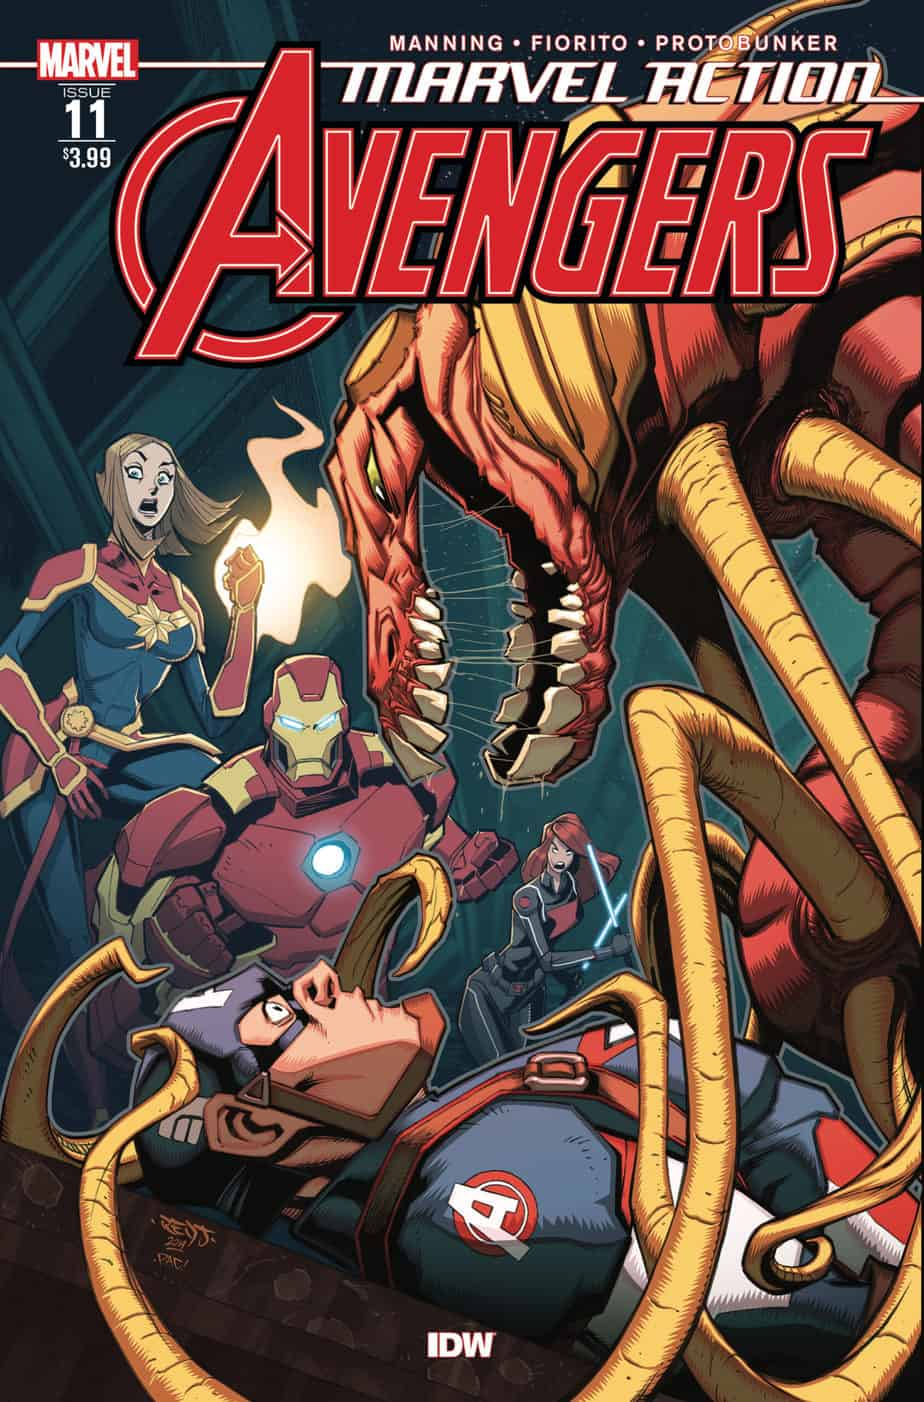 Marvel Action: Avengers #11 - Cover A